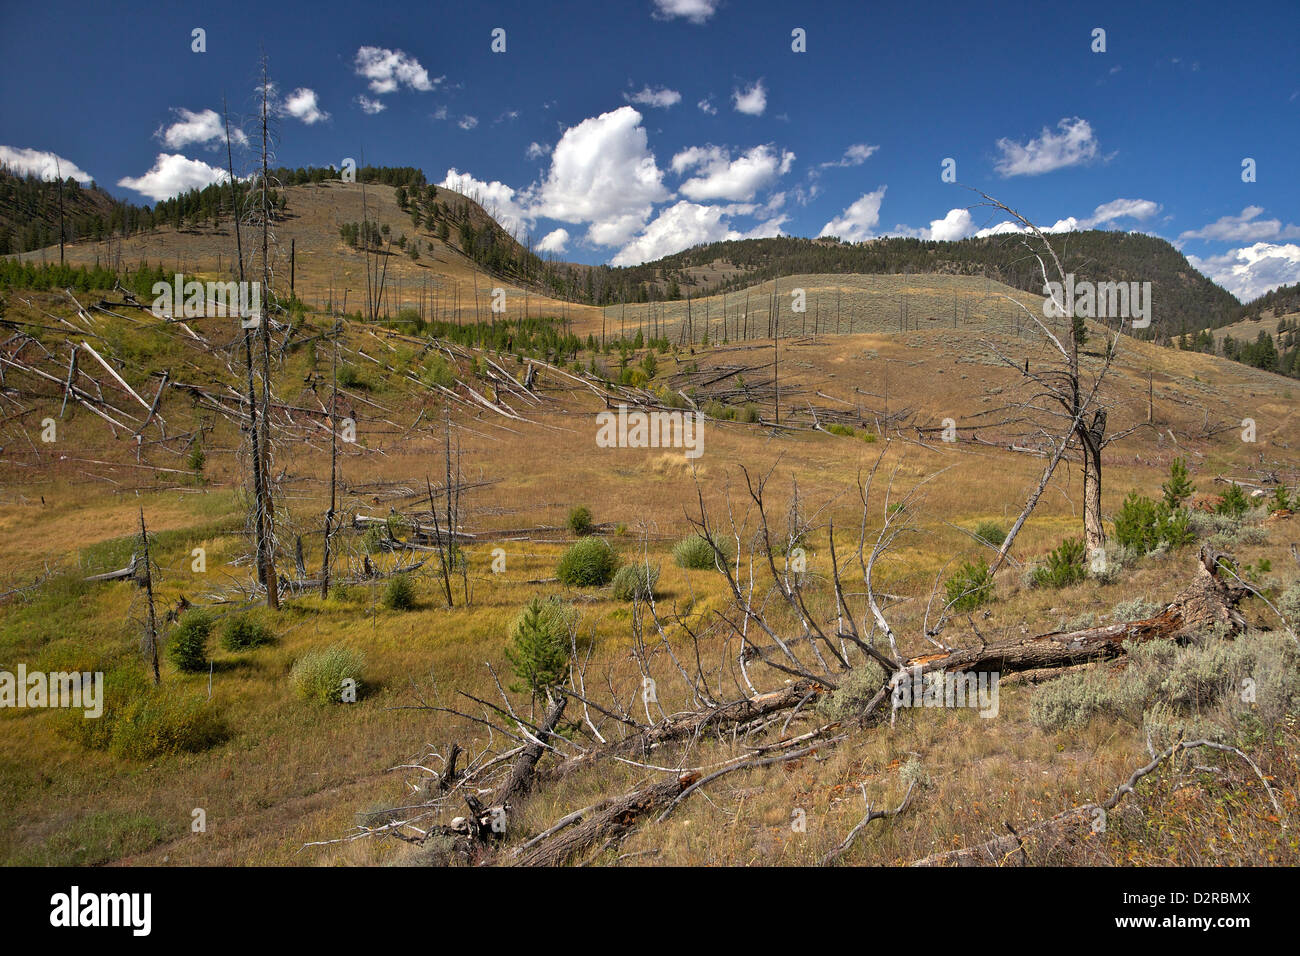 Les troncs de pins tordus sur Blacktail Deer Plateau, le Parc National de Yellowstone, Wyoming, USA Photo Stock